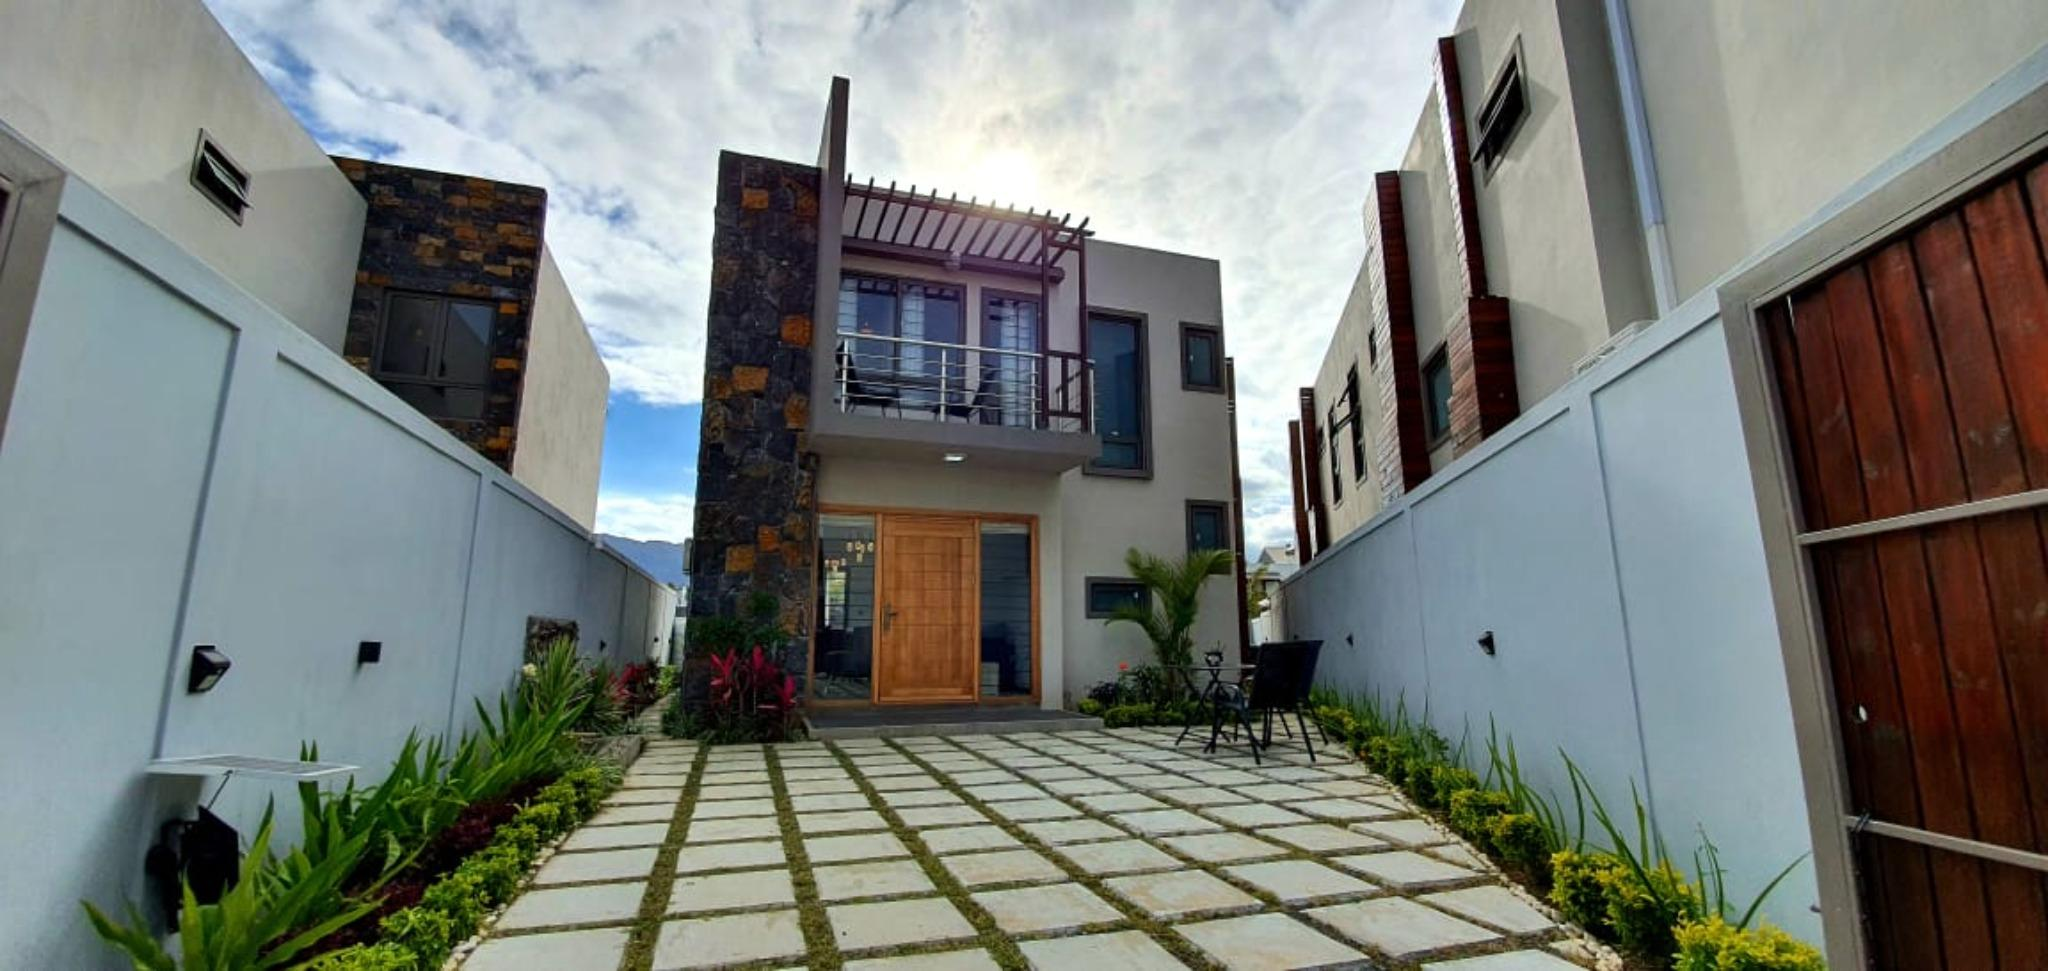 To rent – Magnificent furnished and equipped contemporary house of 171 m2 in Ebene.